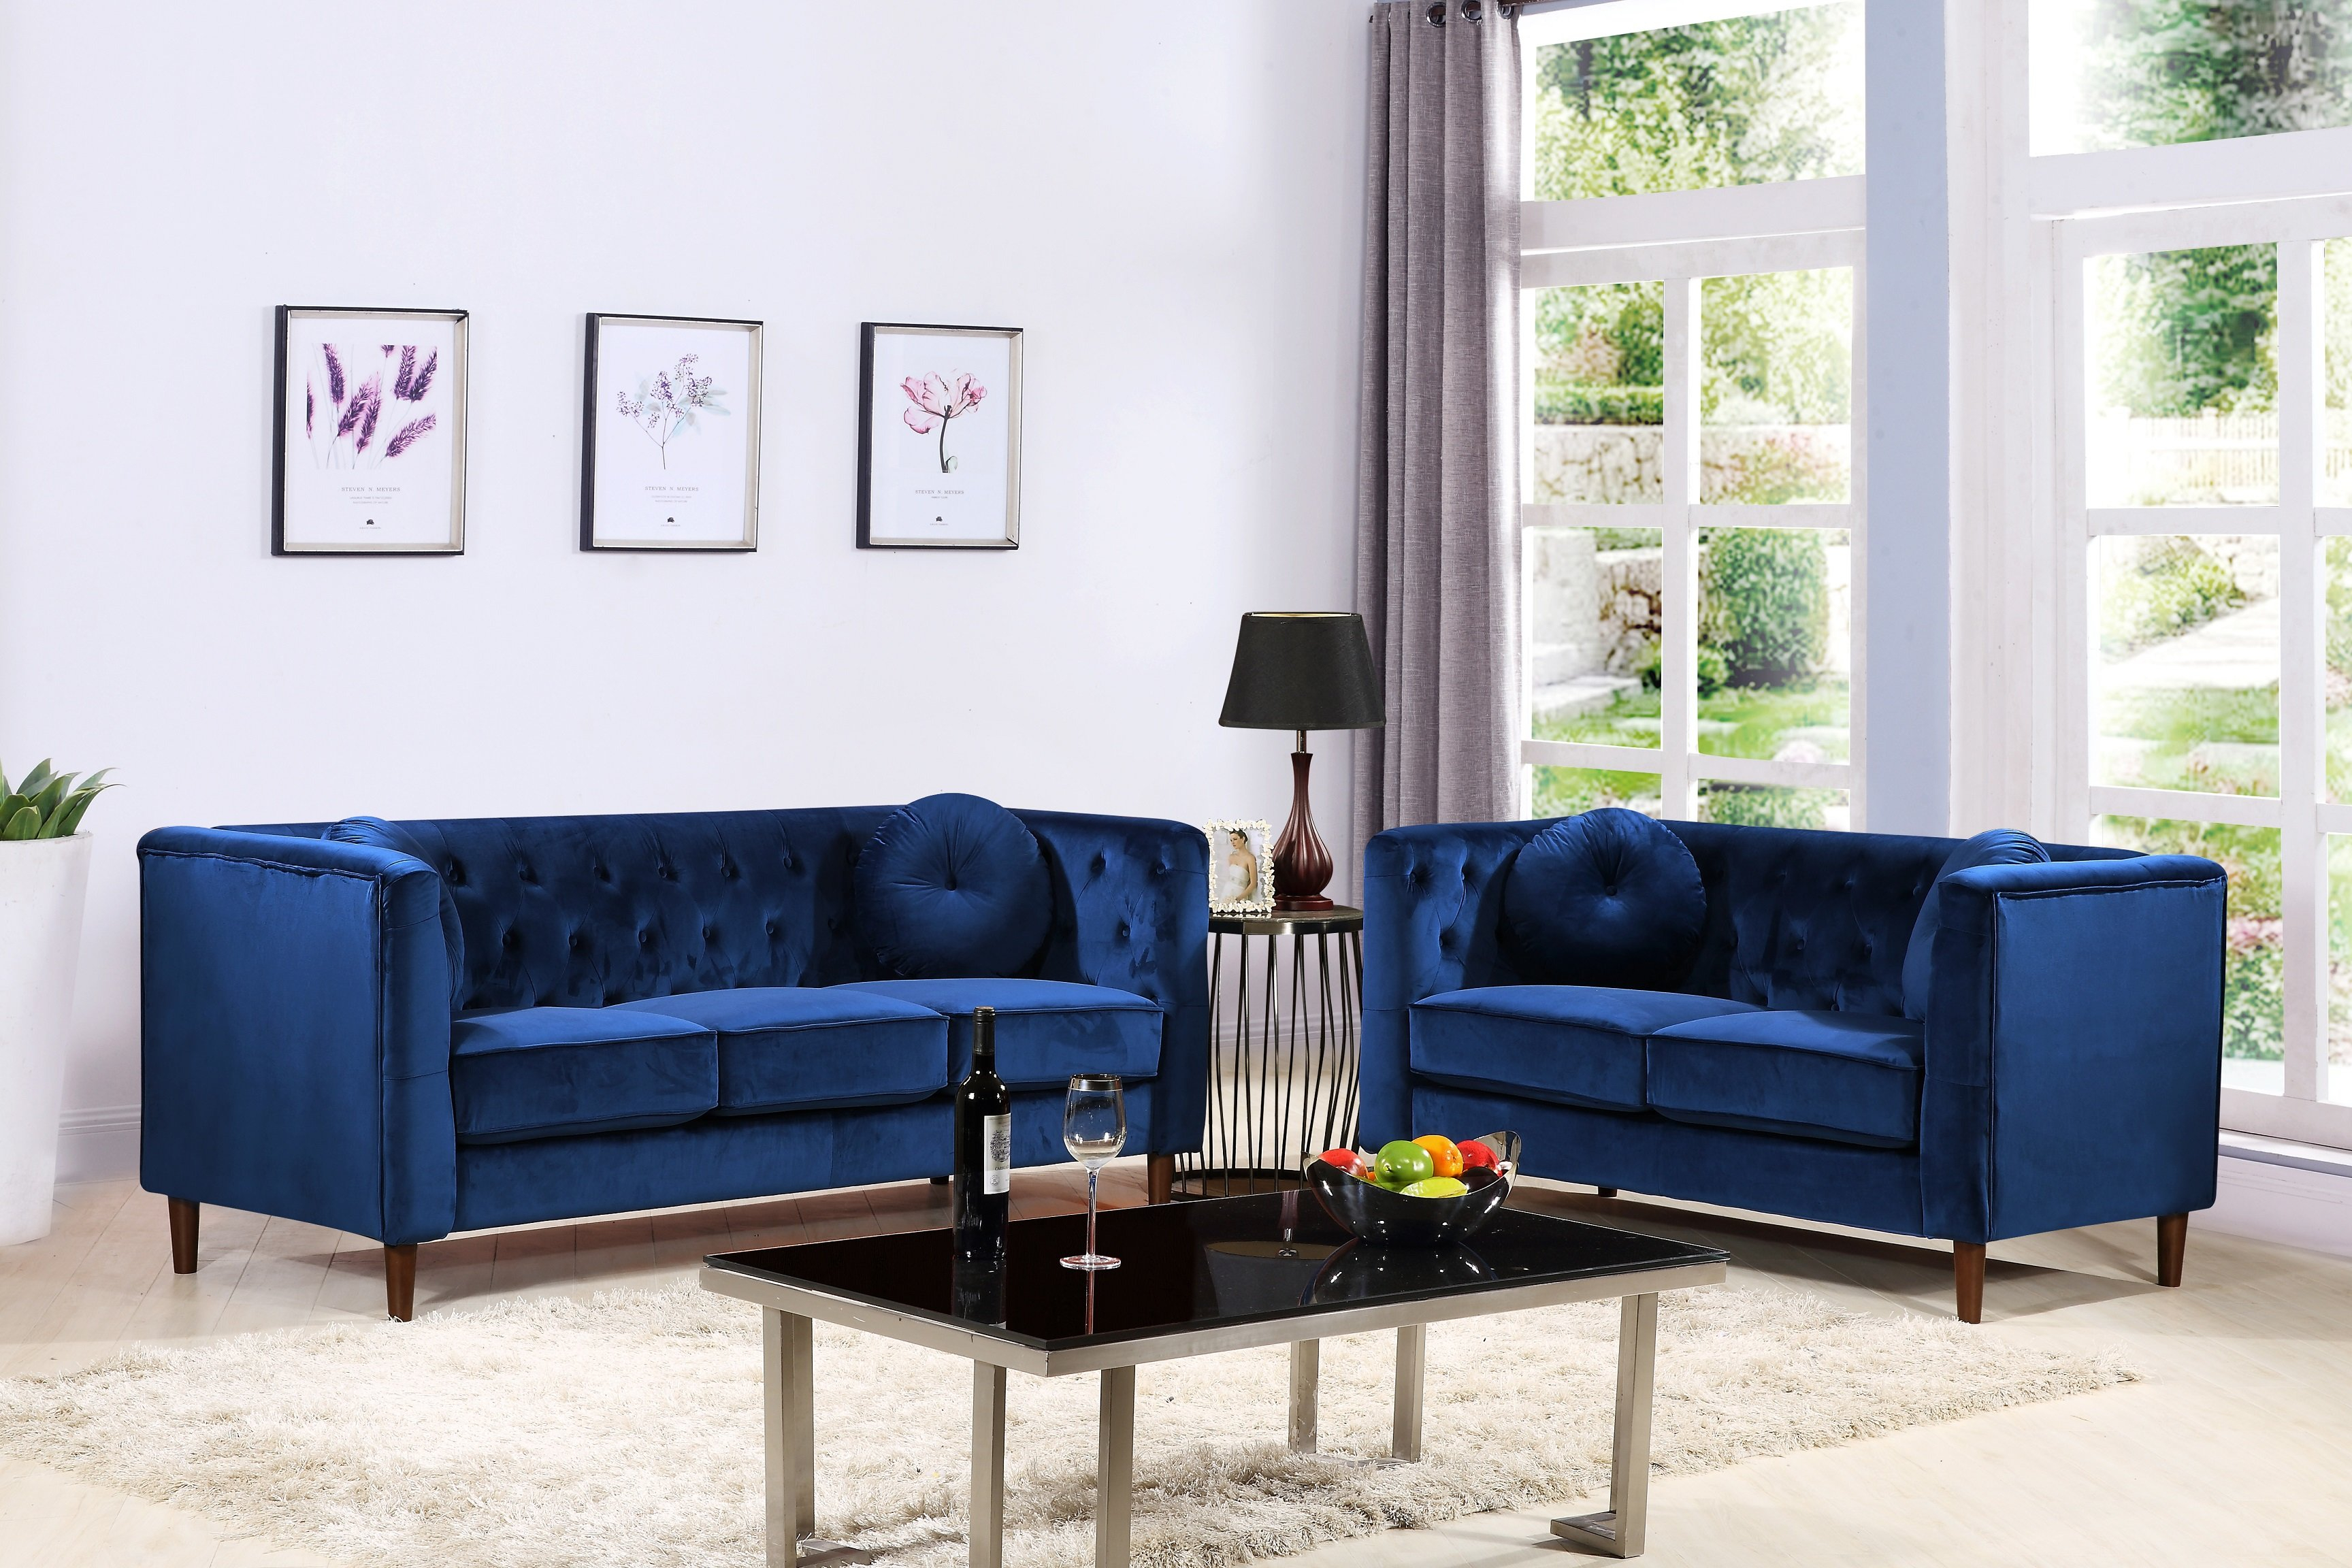 Everly Quinn Kitts Classic Chesterfield 2 Piece Living Room Set in 13 Genius Designs of How to Craft Chesterfield Living Room Set